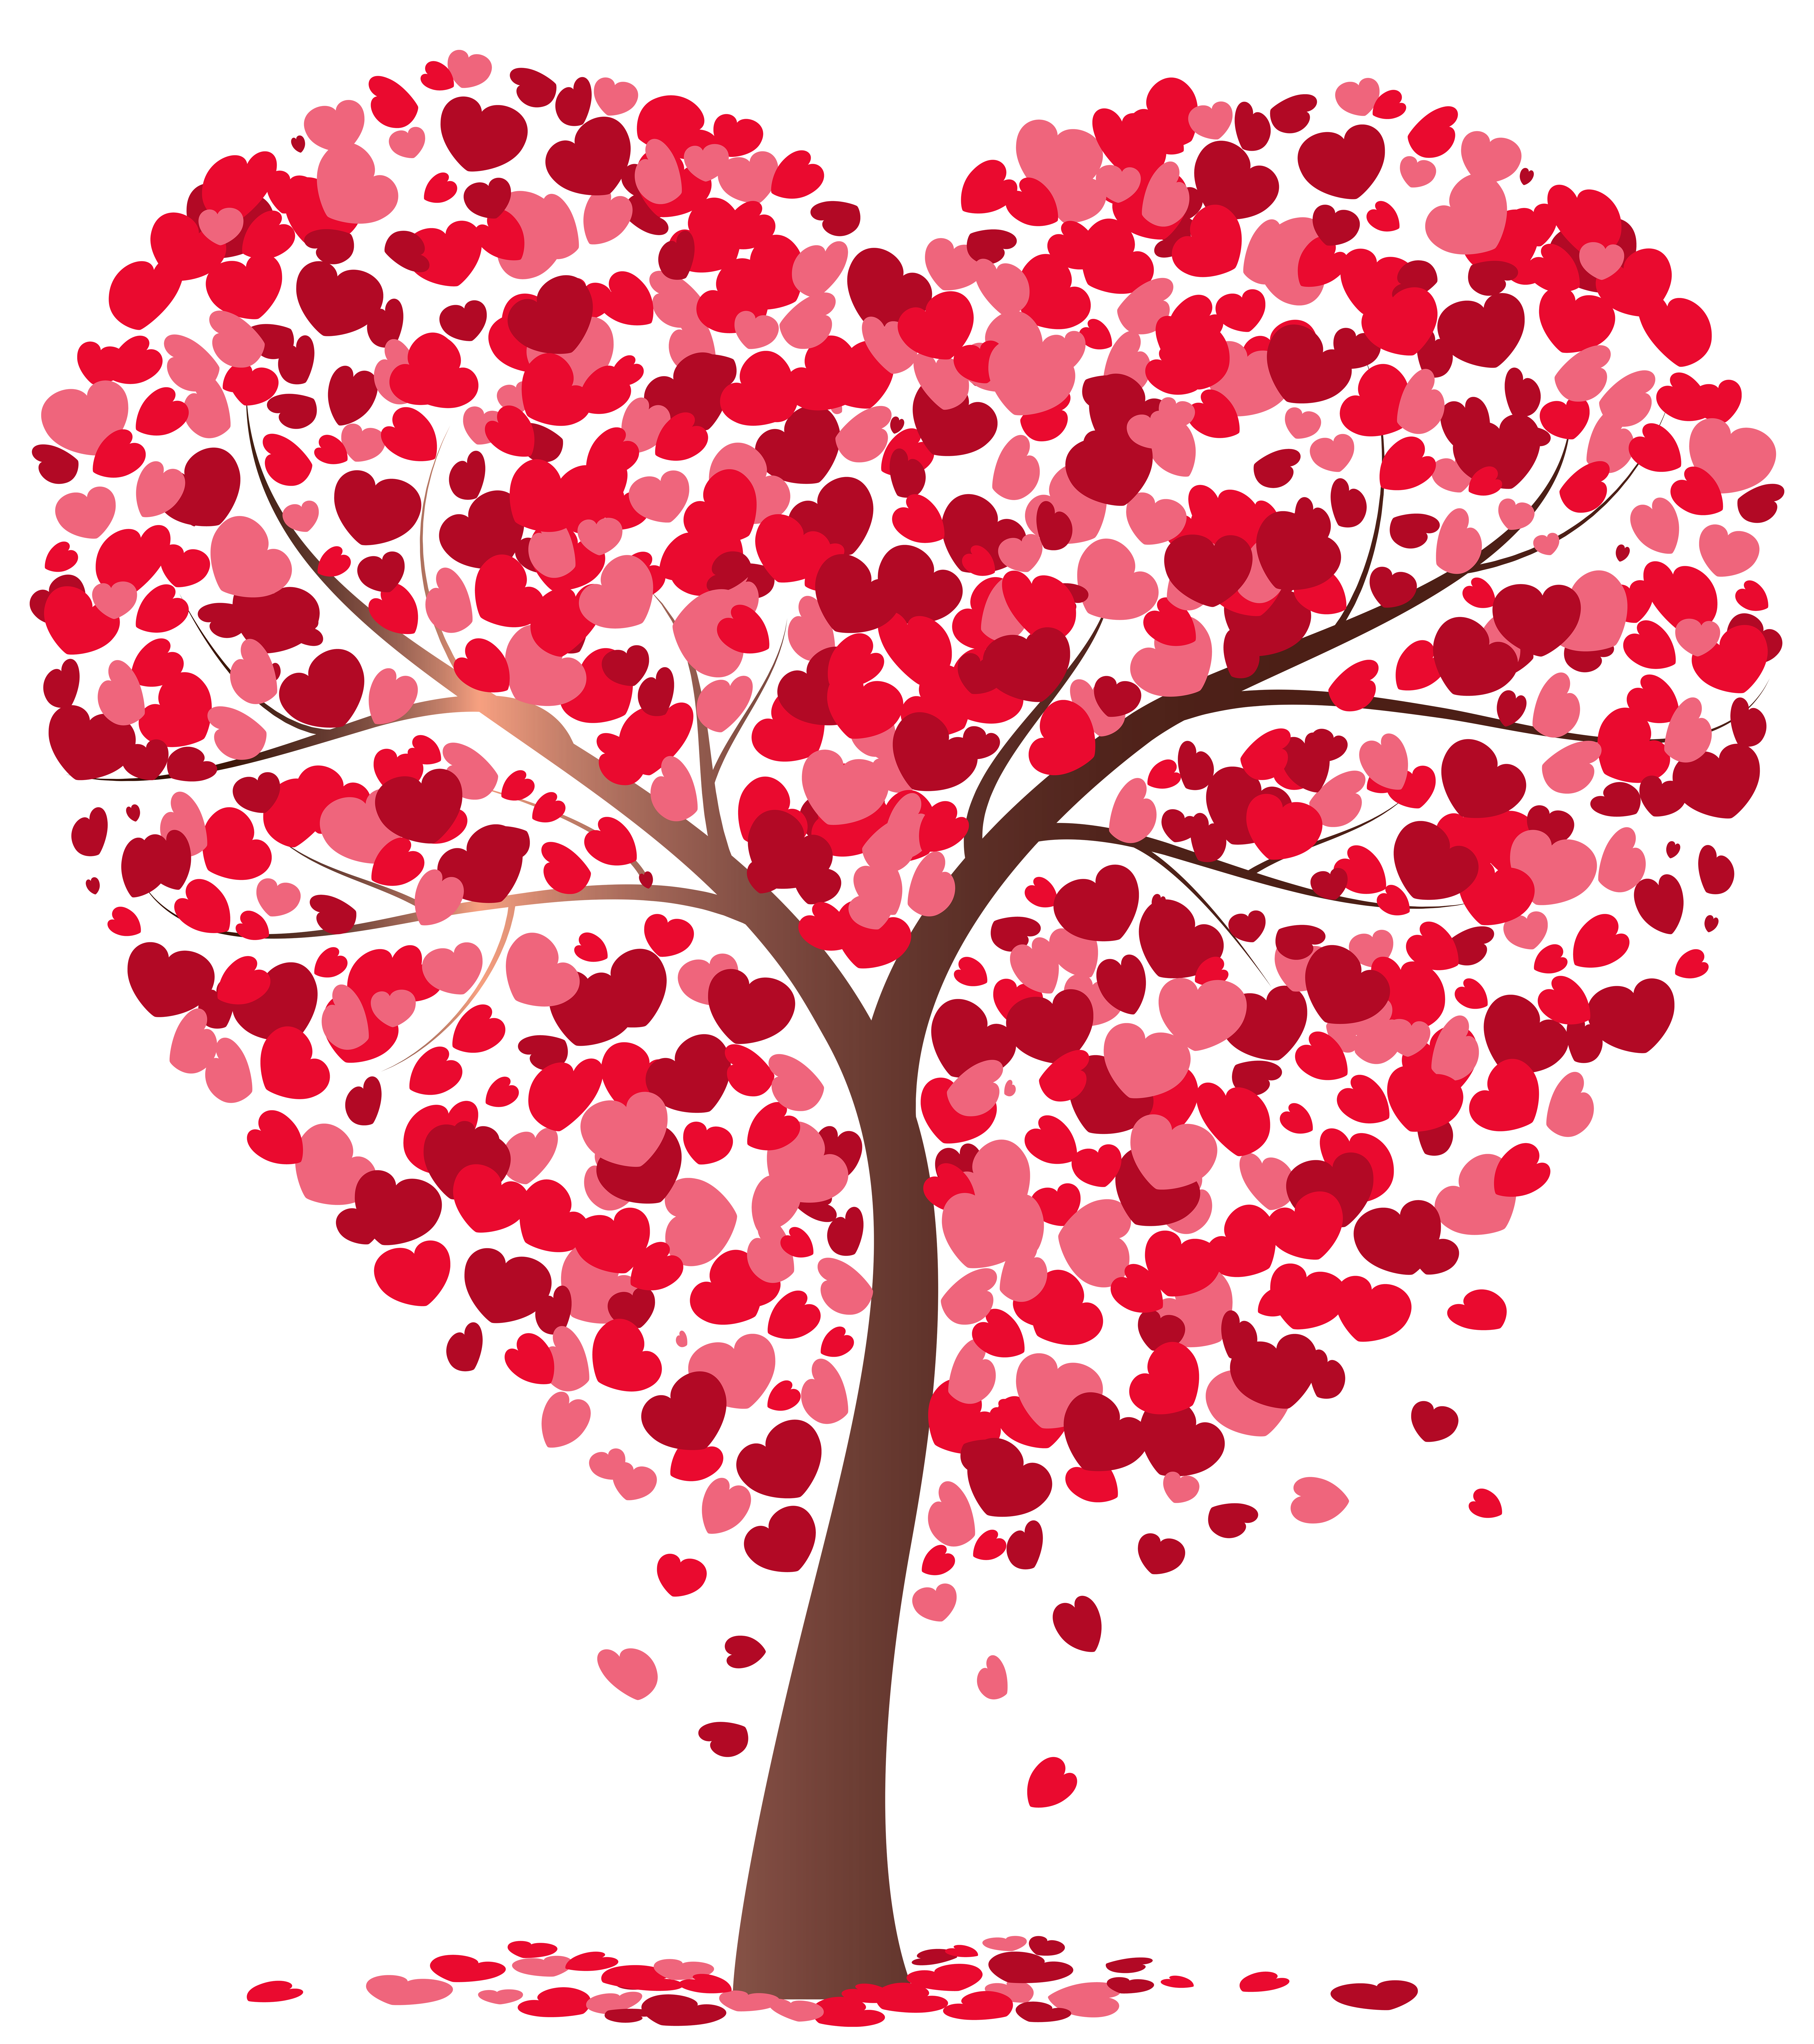 Tree with hearts clipart picture free stock Heart Tree Transparent PNG Image picture free stock